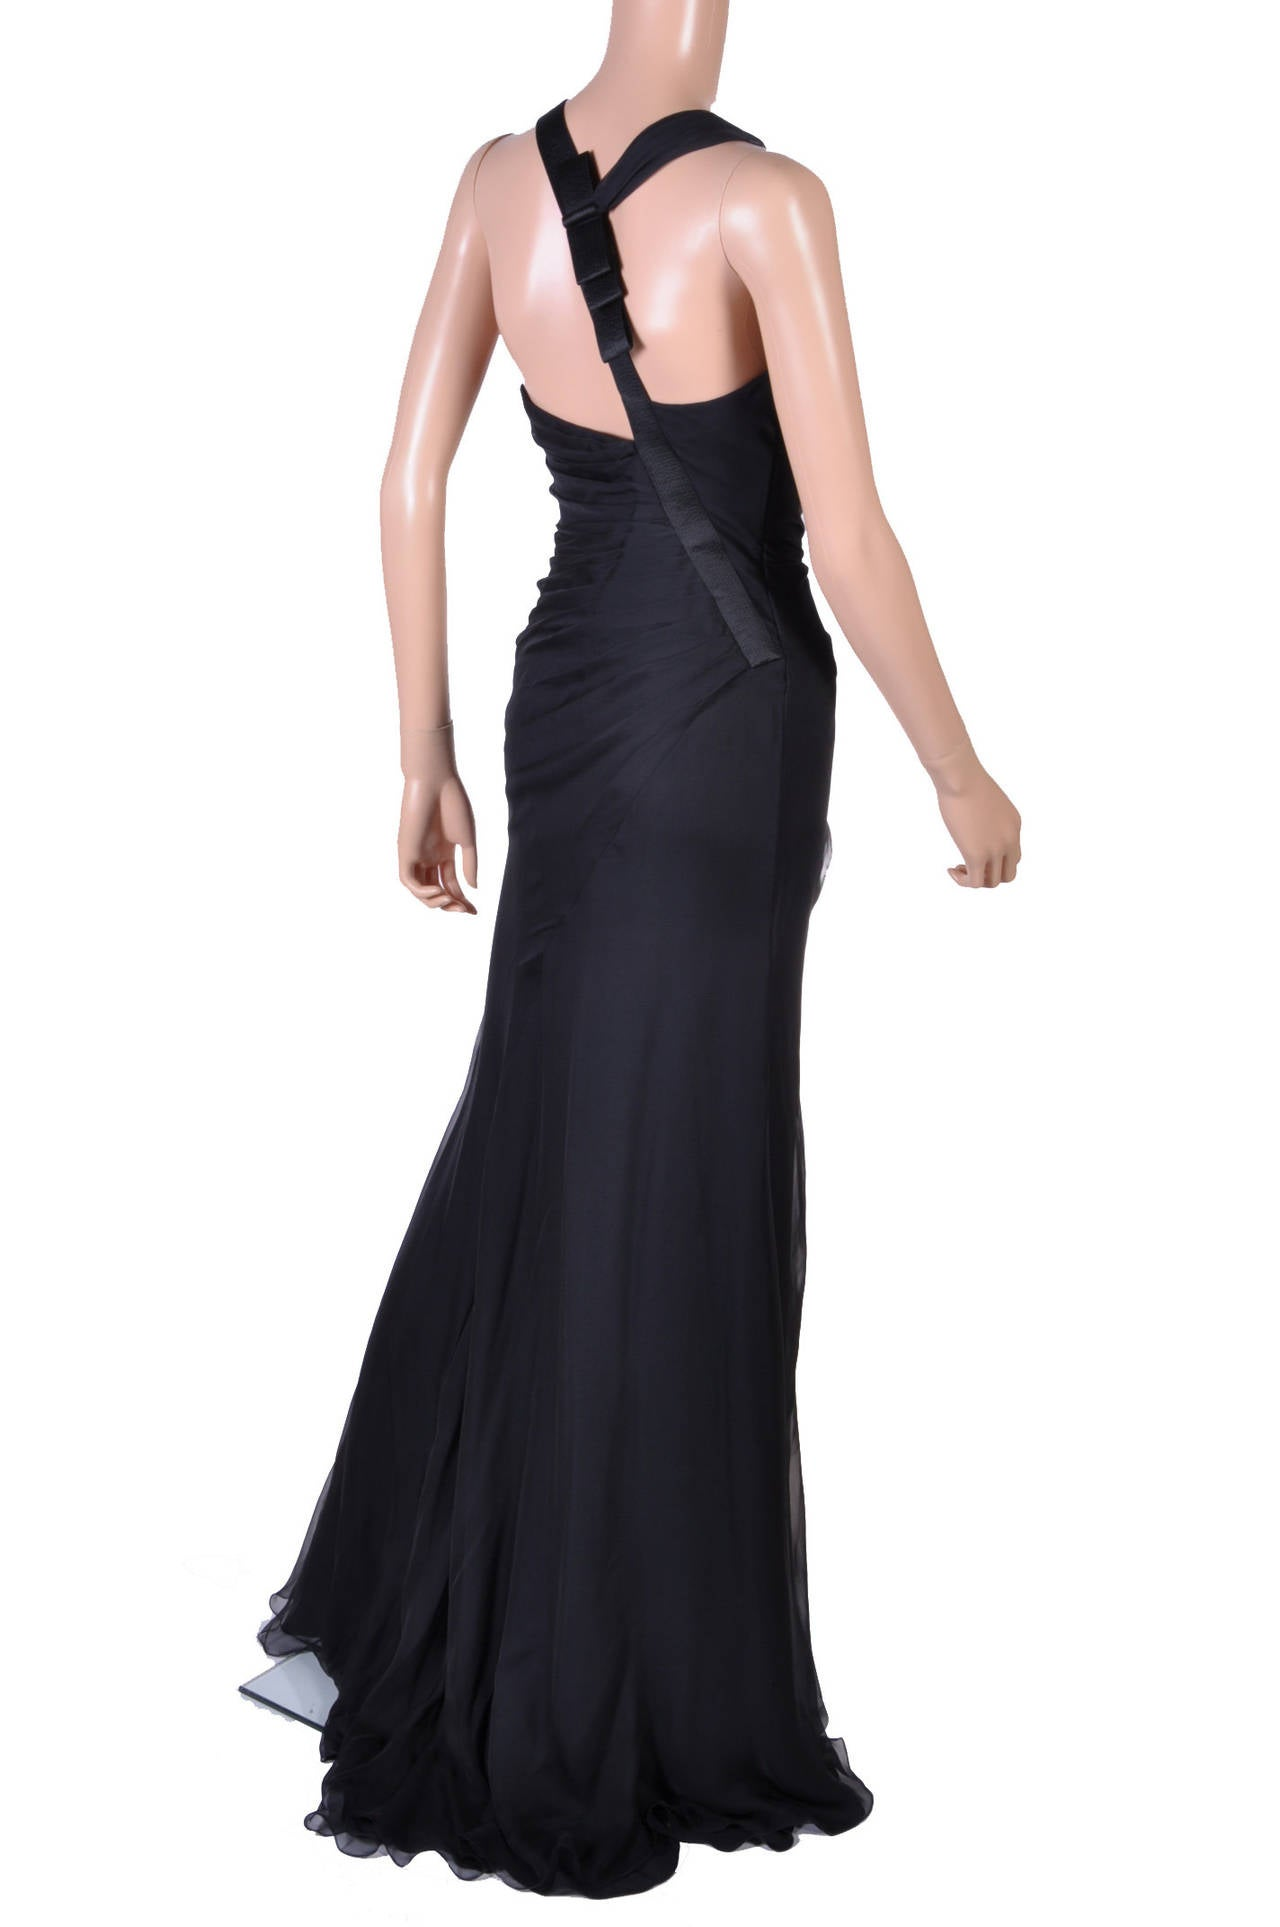 New VERSACE Black Chiffon Silk Gown 6